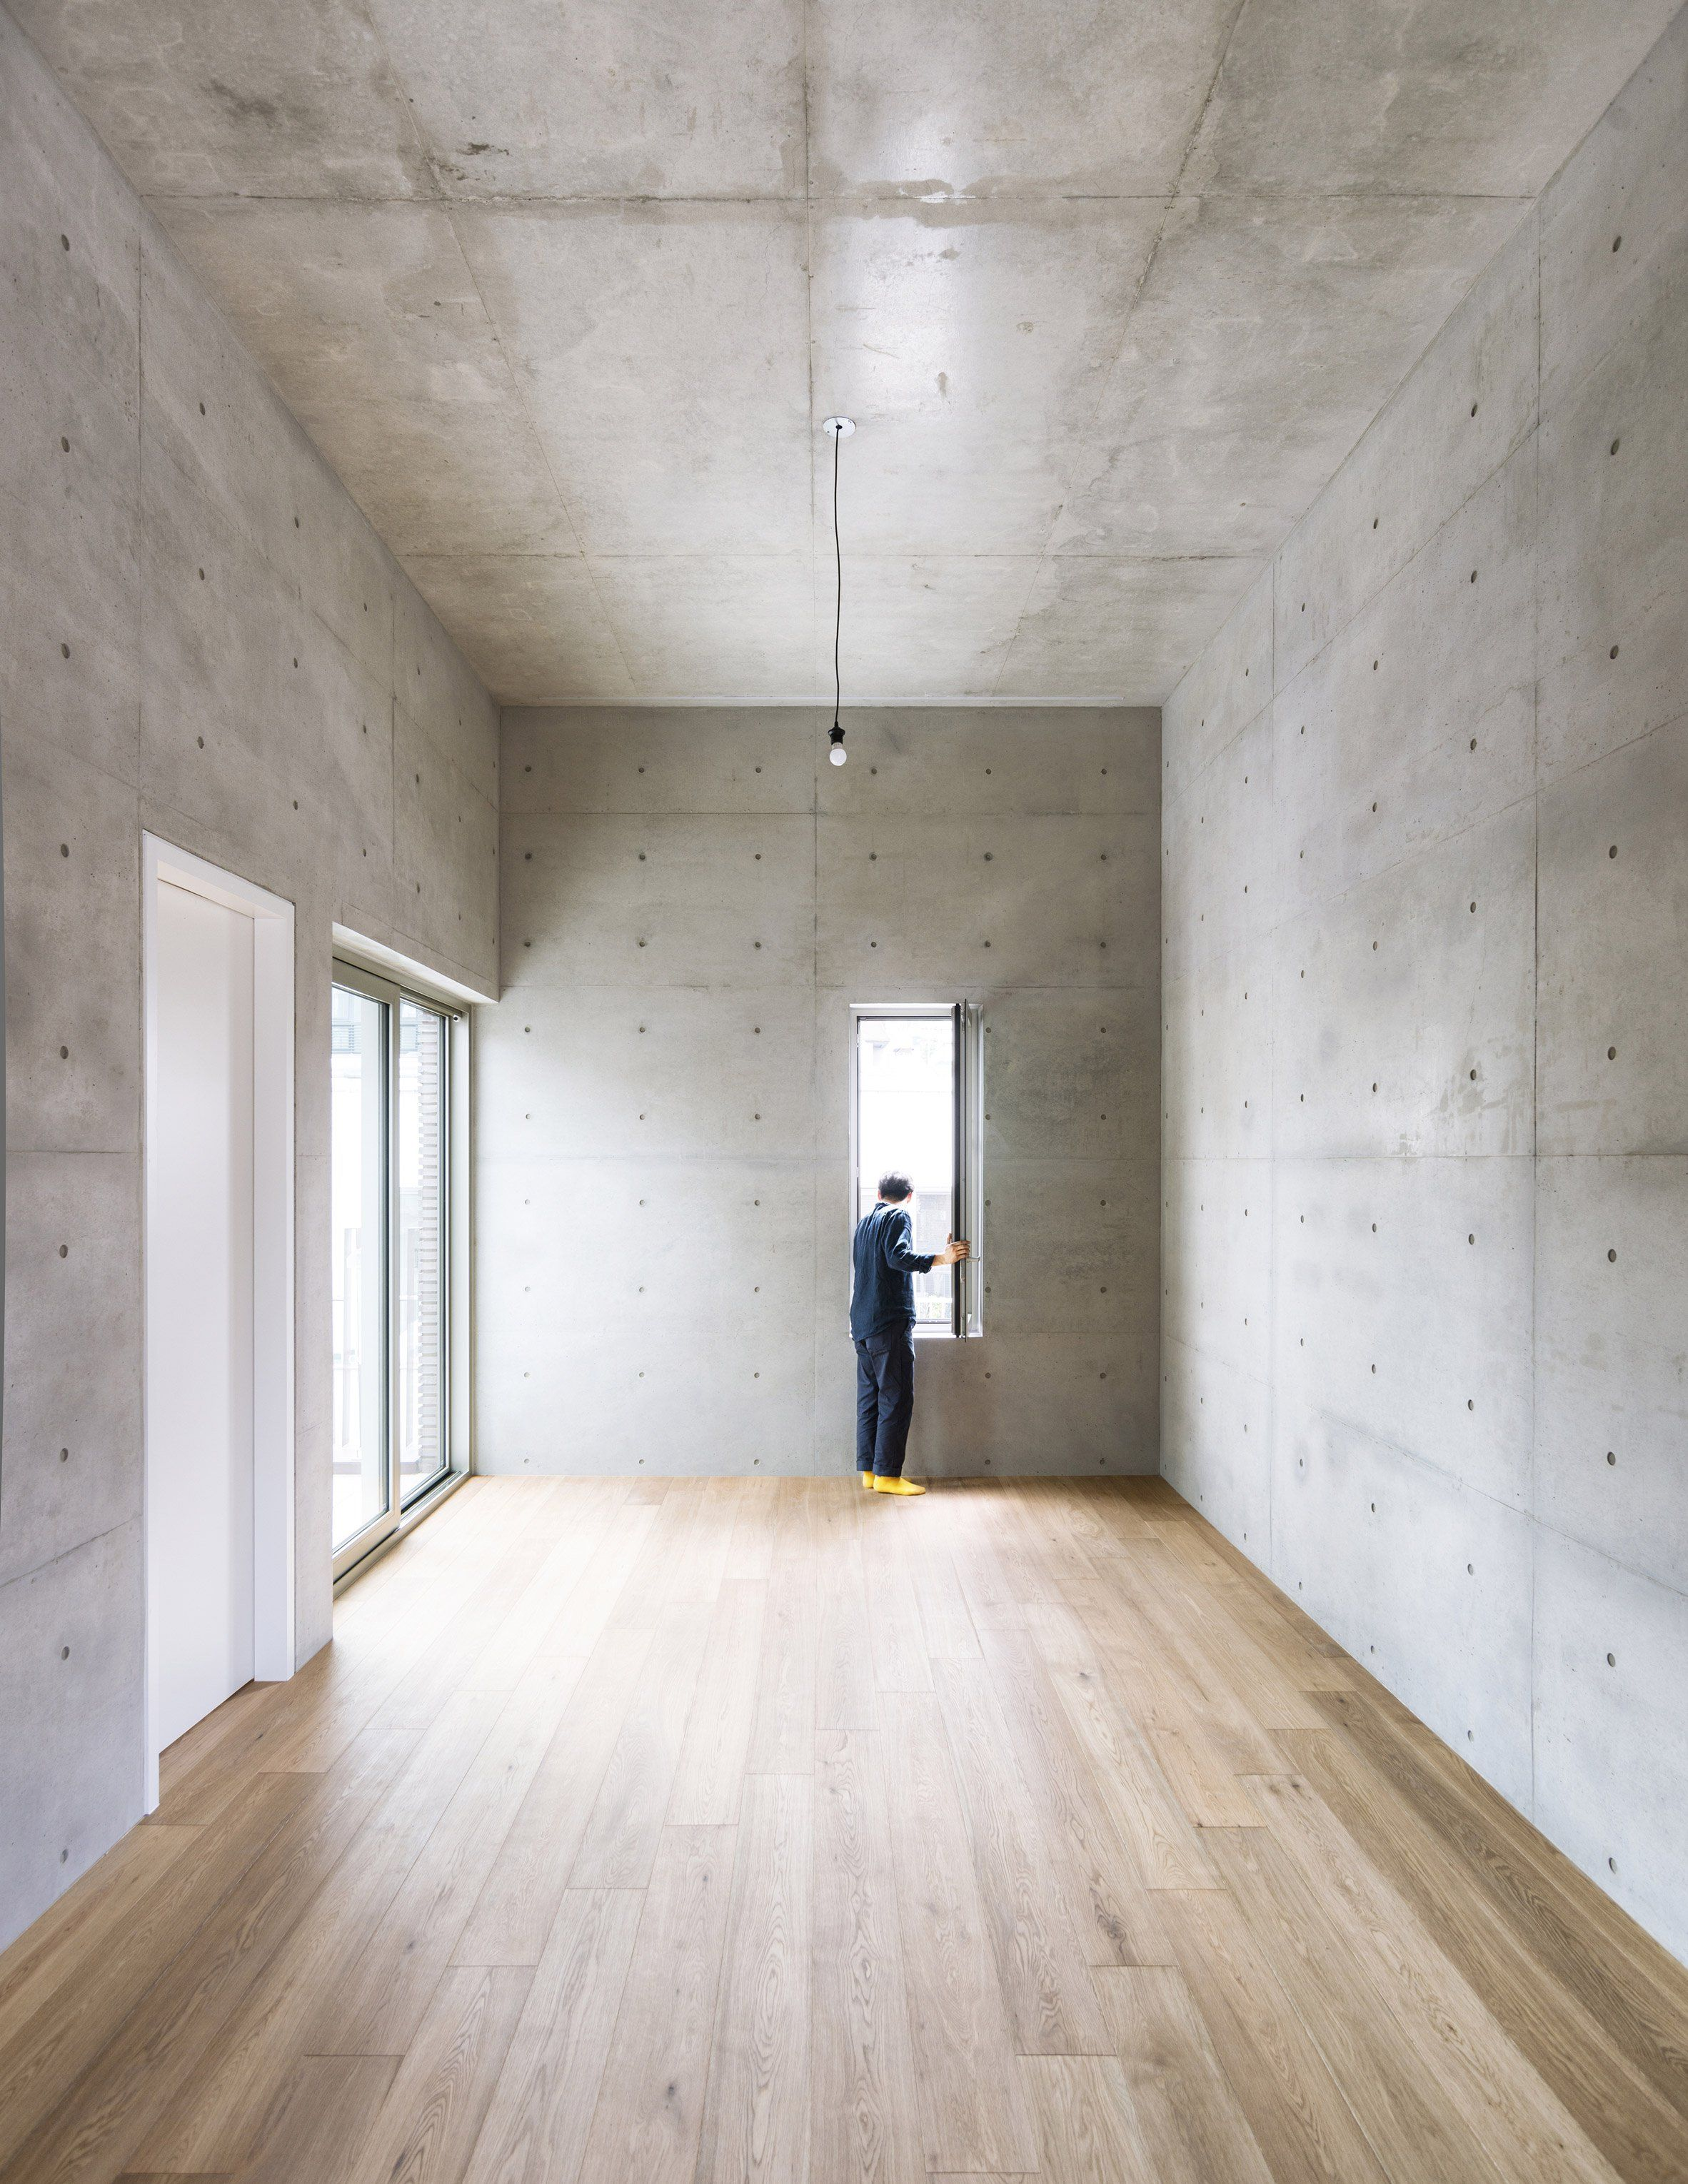 The Inside Of This Building Is Finished Minimally With Reinforced Concrete Walls Left Mainly